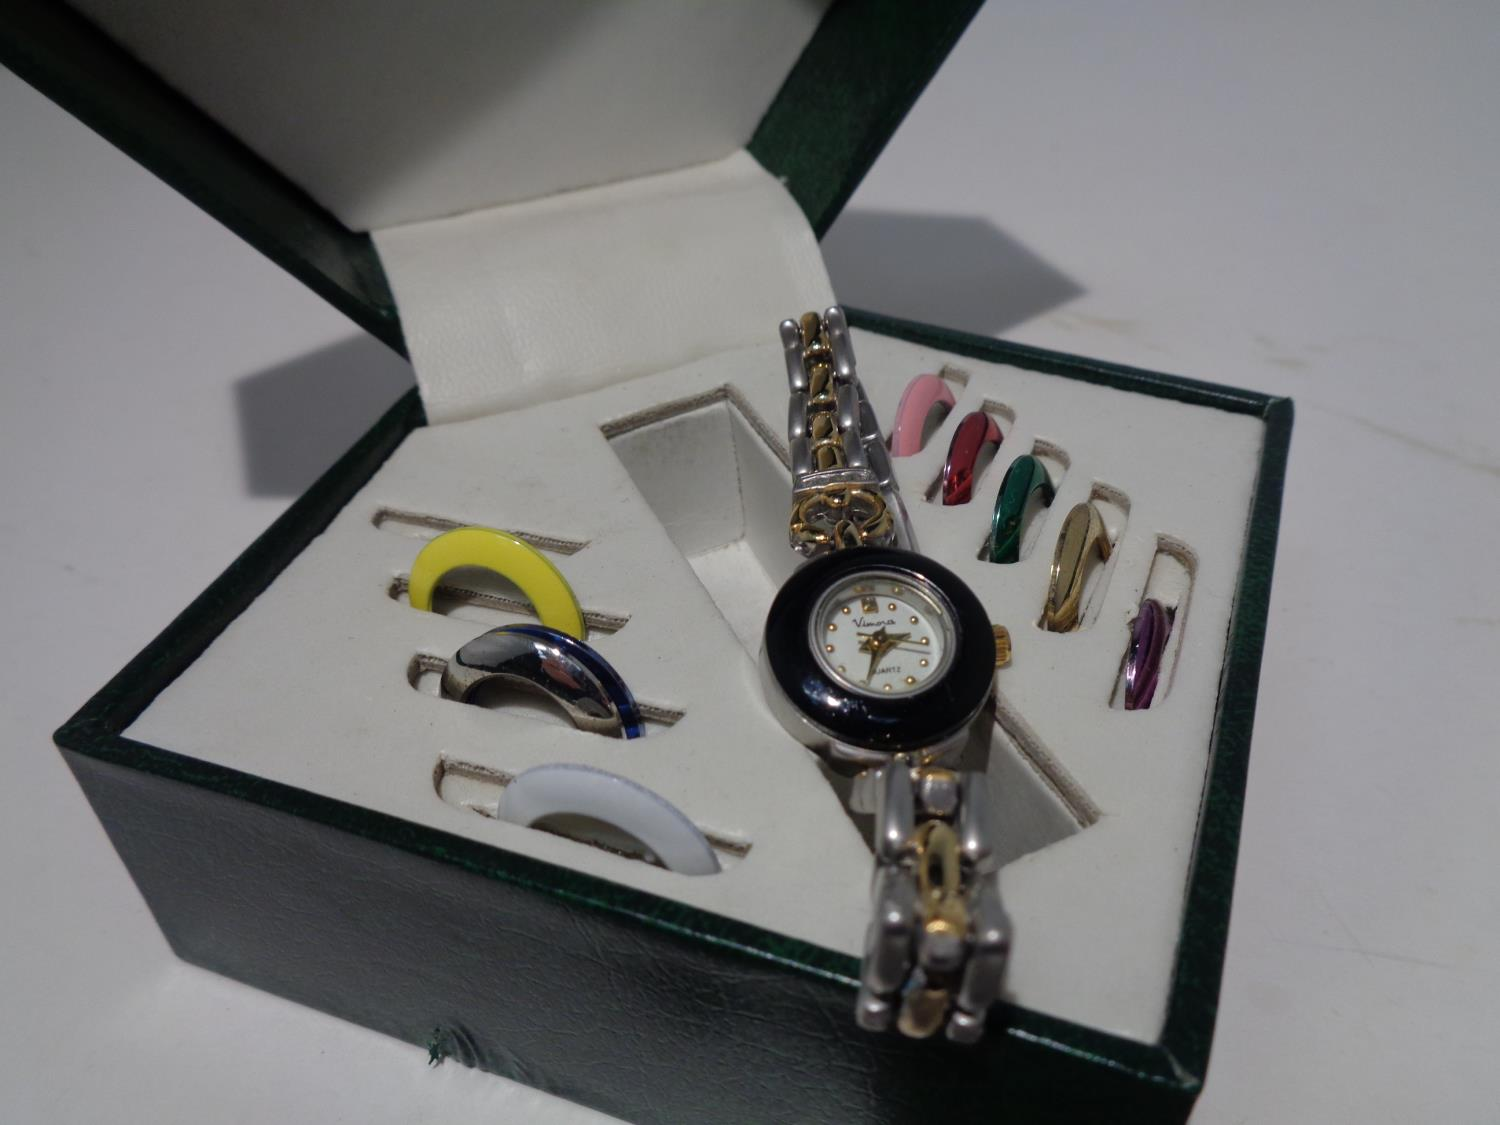 A VIMORA BOXED WATCH WITH COLOURED INTERCHANGEABLE WATCH FACE SURROUNDINGS - Image 4 of 6